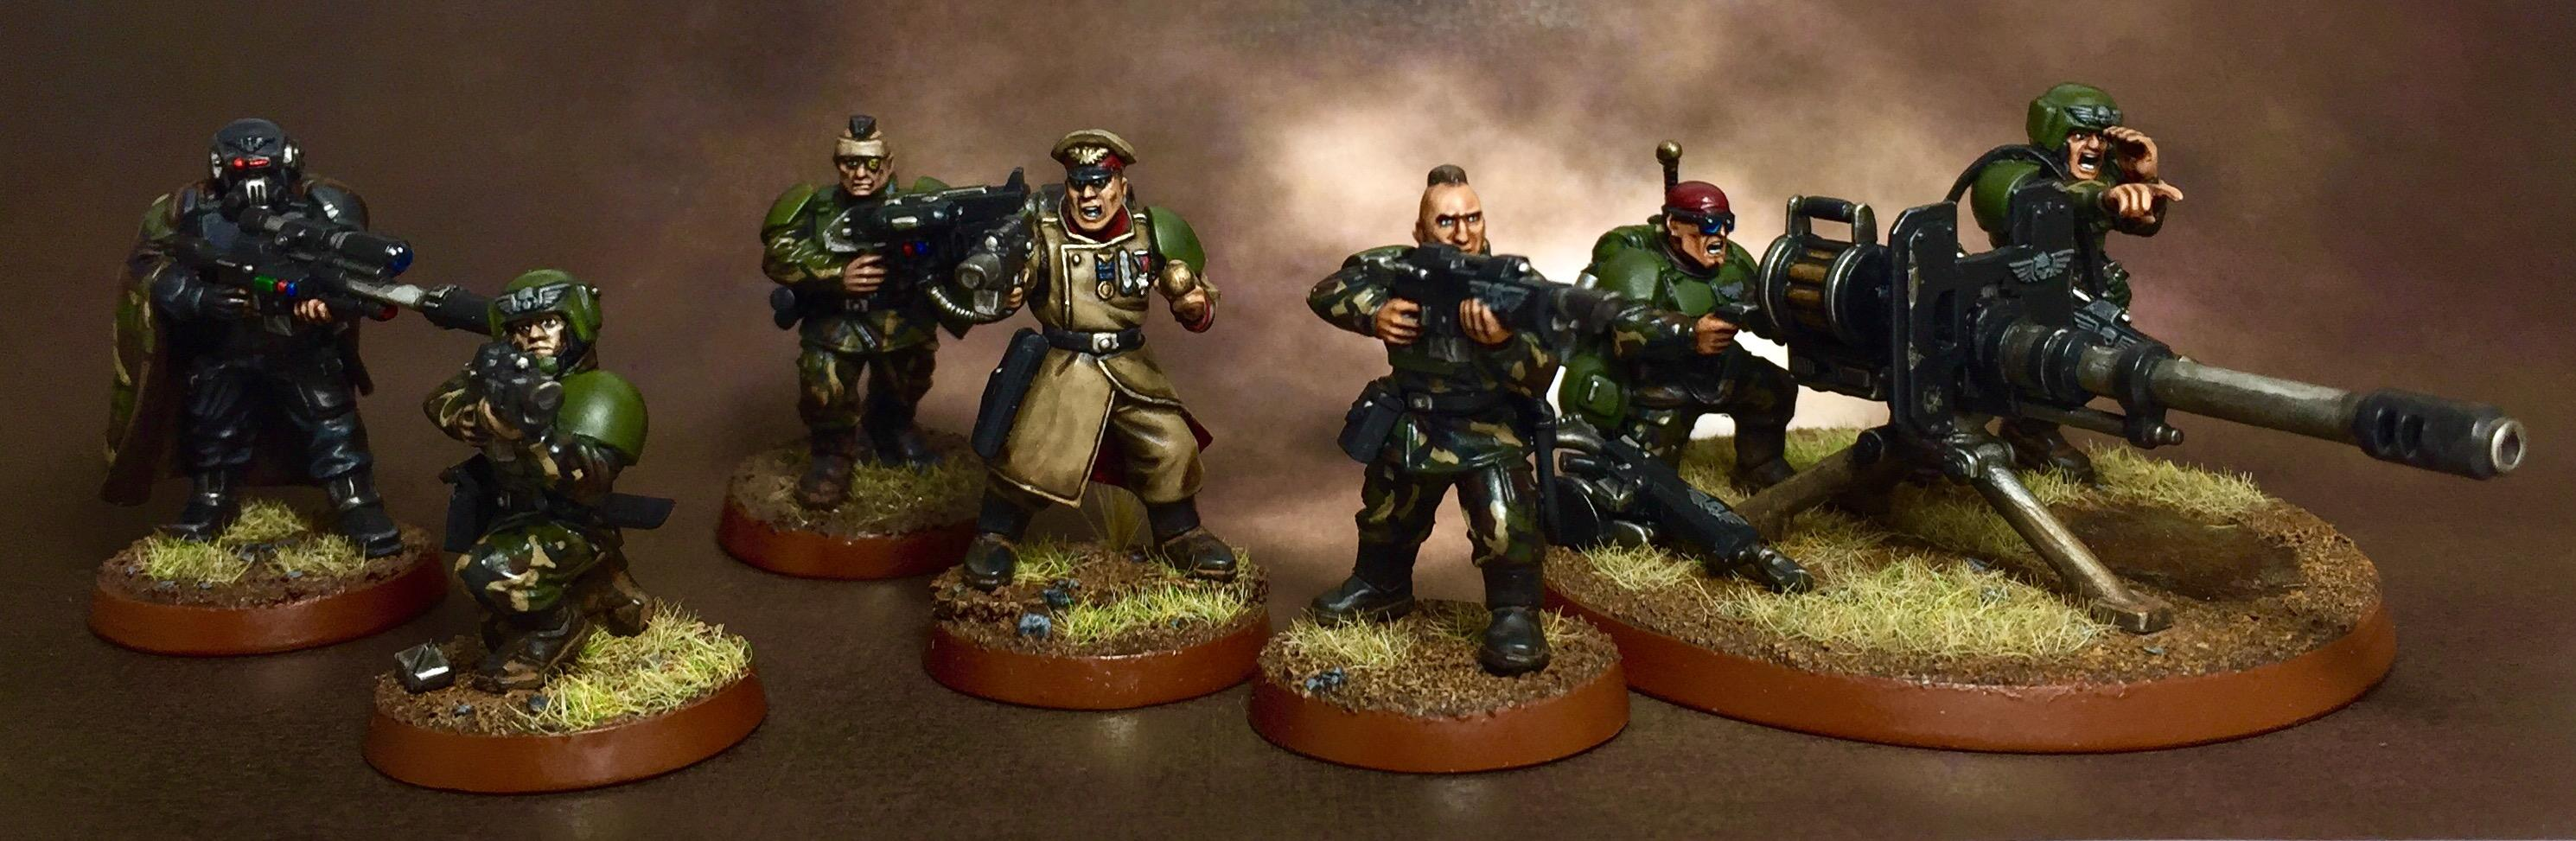 Camouflage, Guard, Imperial, Kill, Team